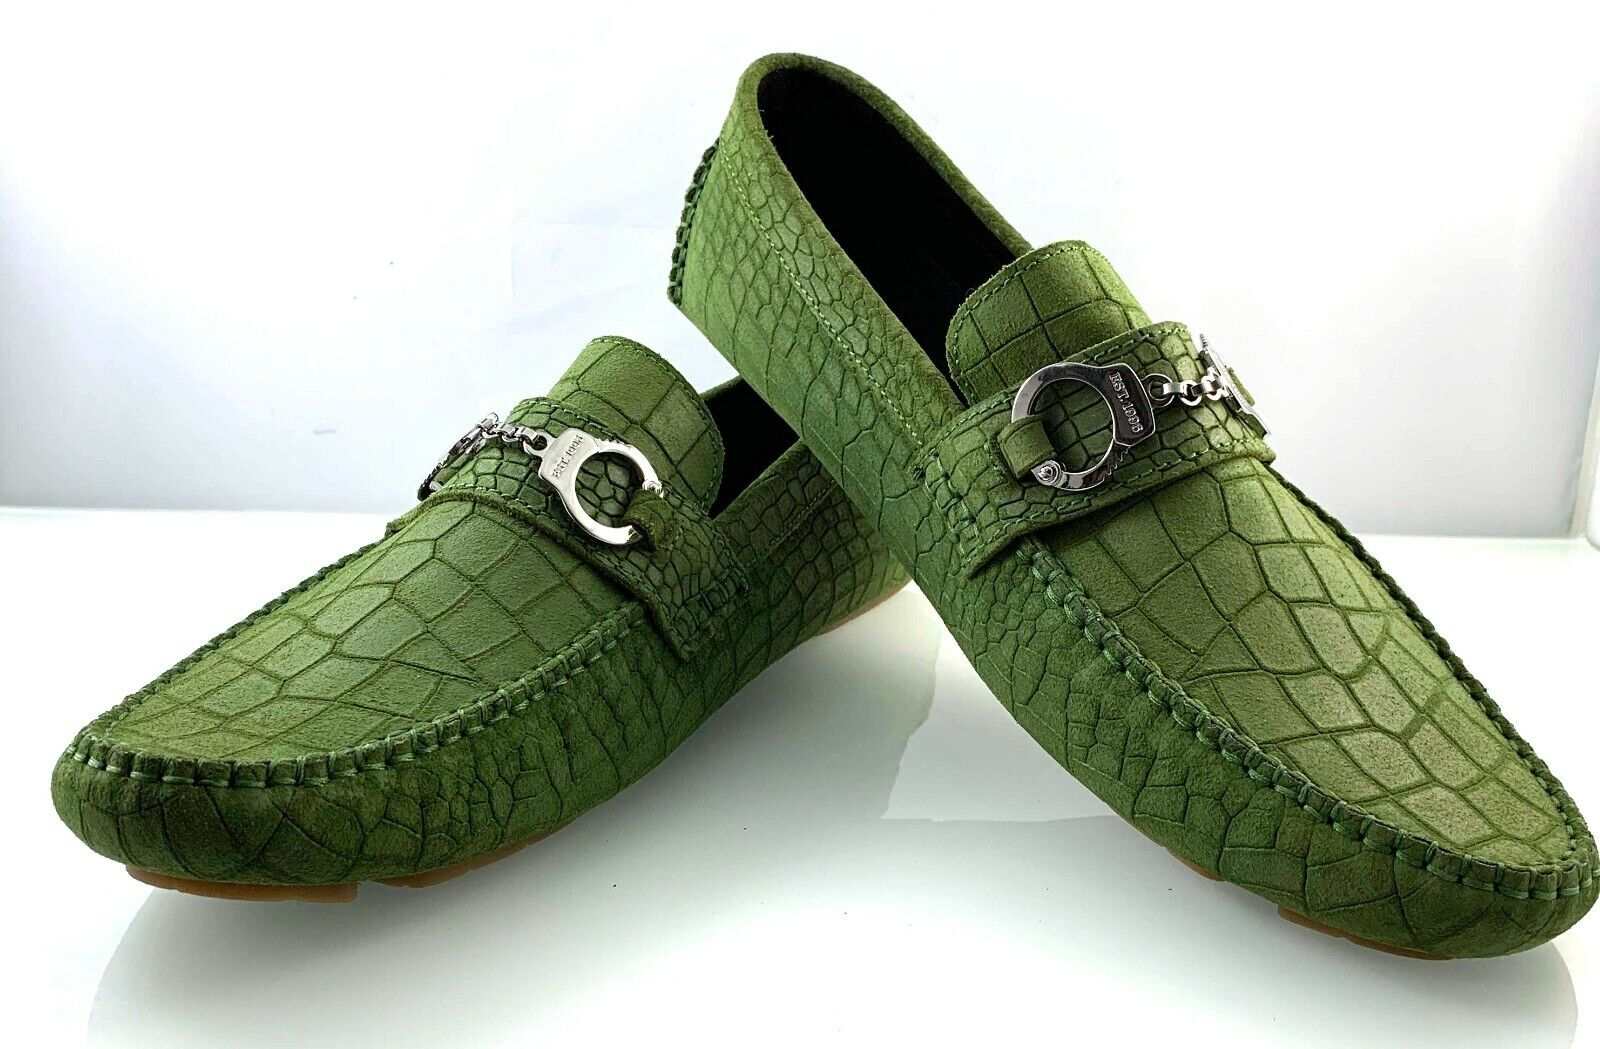 JIMMY CHOO MENS SUEDE LEATHER GREEN HANDCUFF LOAFER SHOES size 42